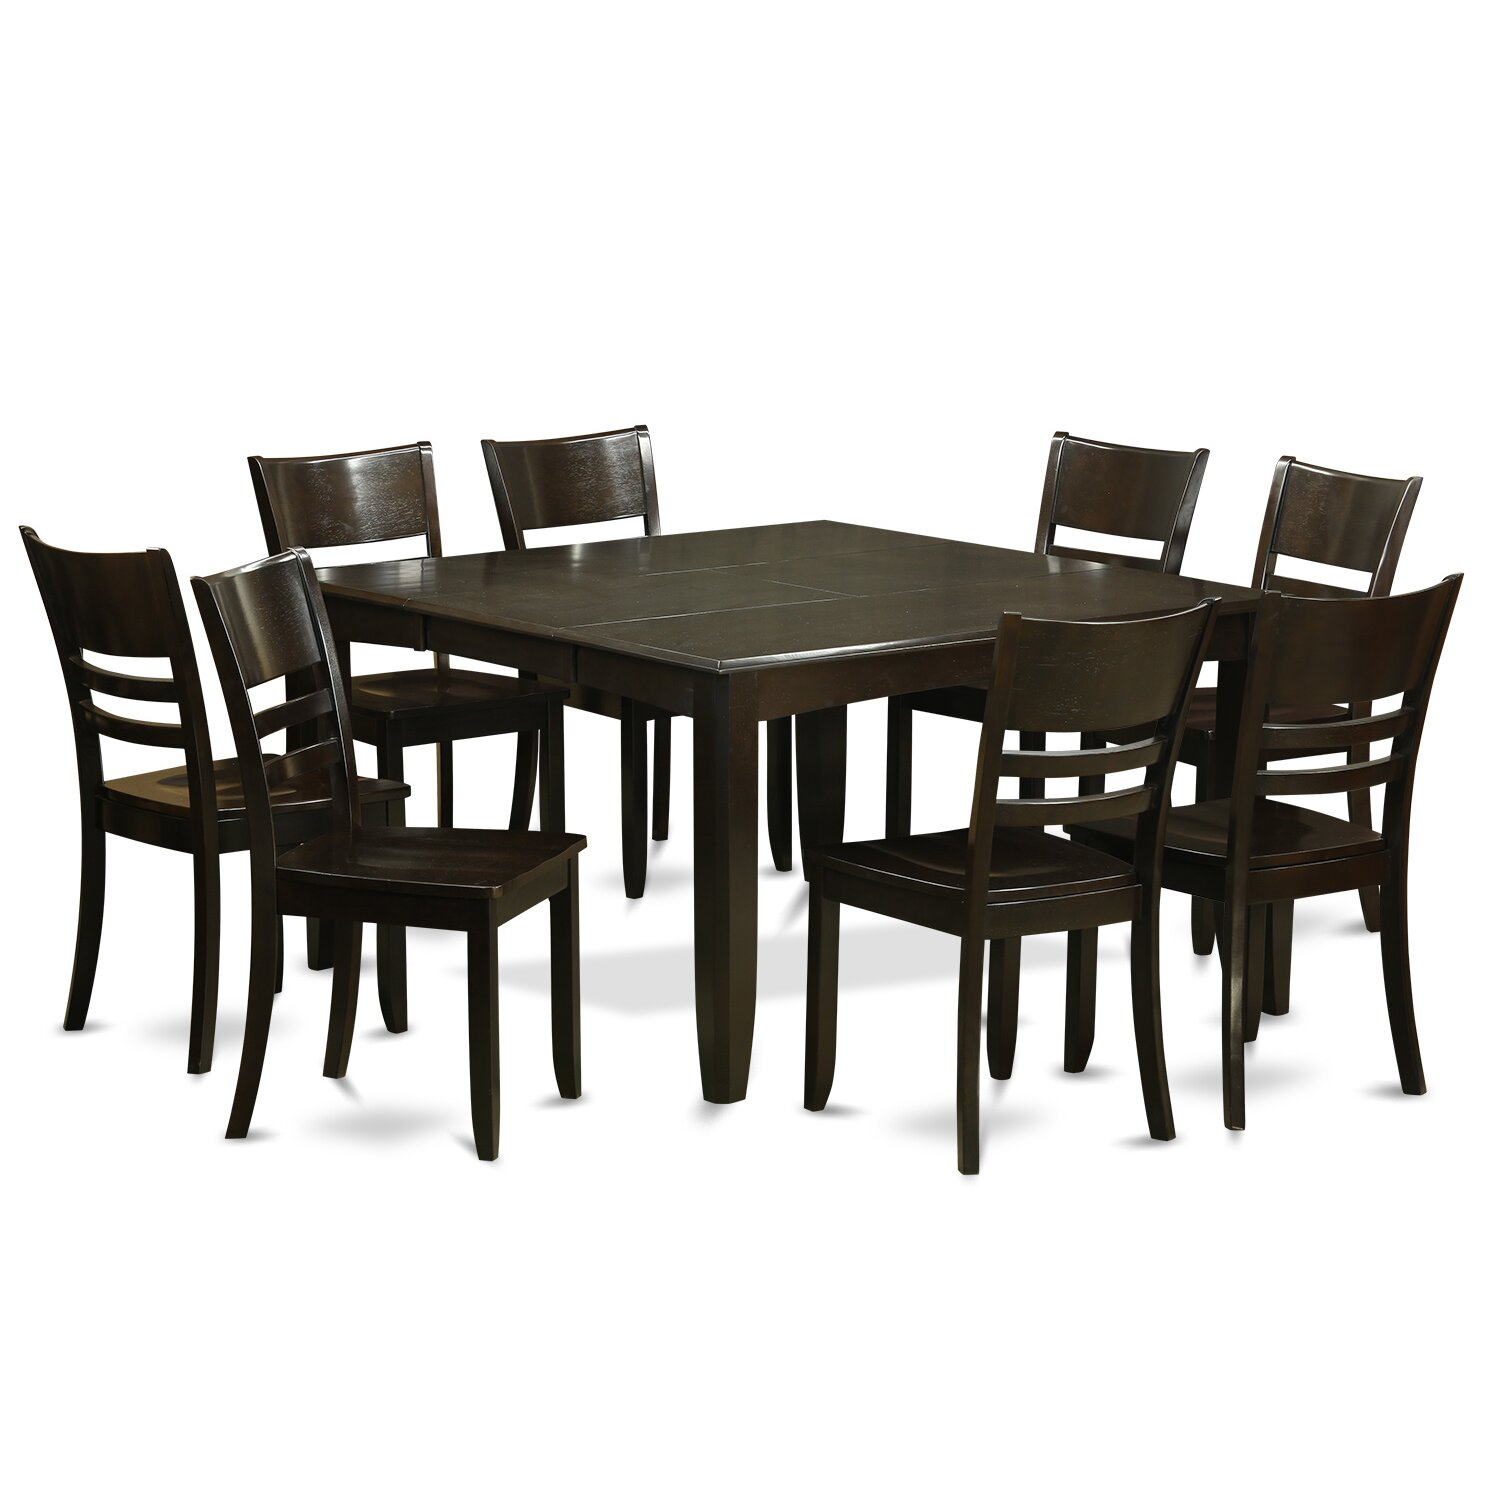 9 Piece Dining Table Set For 8 Dining Room Table With 8: Wooden Importers Parfait 9 Piece Dining Set